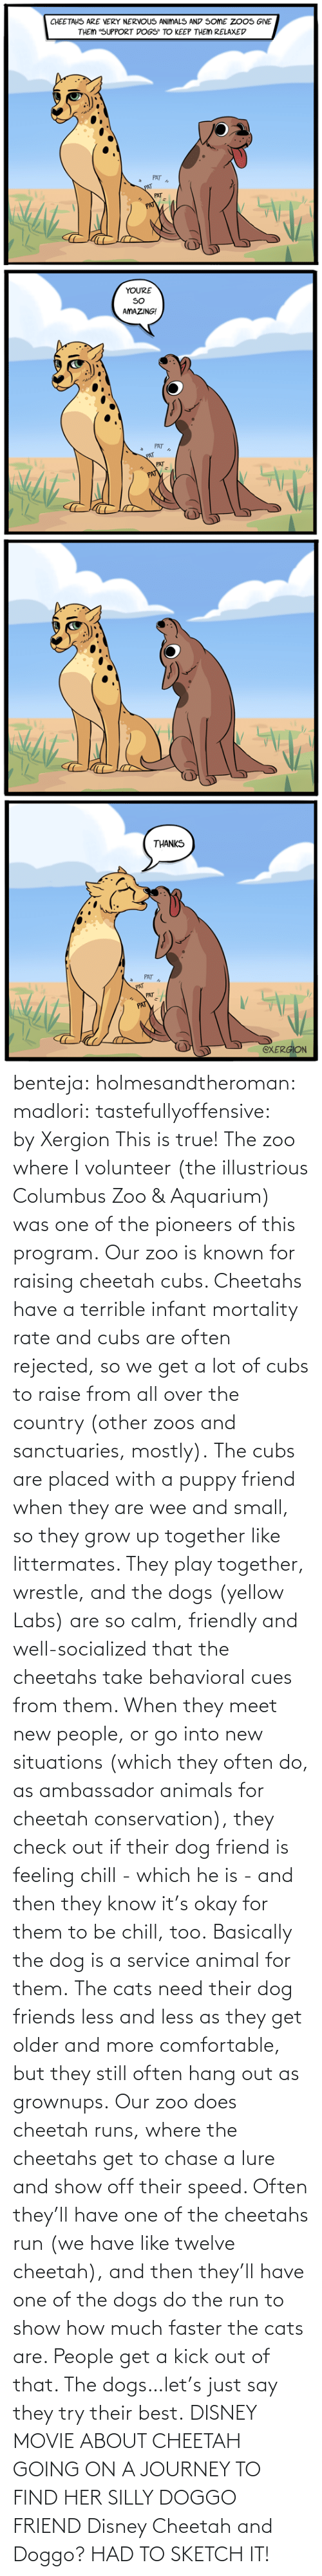 Run: benteja:  holmesandtheroman:  madlori:  tastefullyoffensive: by Xergion This is true! The zoo where I volunteer (the illustrious Columbus Zoo & Aquarium) was one of the pioneers of this program. Our zoo is known for raising cheetah cubs. Cheetahs have a terrible infant mortality rate and cubs are often rejected, so we get a lot of cubs to raise from all over the country (other zoos and sanctuaries, mostly). The cubs are placed with a puppy friend when they are wee and small, so they grow up together like littermates. They play together, wrestle, and the dogs (yellow Labs) are so calm, friendly and well-socialized that the cheetahs take behavioral cues from them. When they meet new people, or go into new situations (which they often do, as ambassador animals for cheetah conservation), they check out if their dog friend is feeling chill - which he is - and then they know it's okay for them to be chill, too. Basically the dog is a service animal for them. The cats need their dog friends less and less as they get older and more comfortable, but they still often hang out as grownups. Our zoo does cheetah runs, where the cheetahs get to chase a lure and show off their speed. Often they'll have one of the cheetahs run (we have like twelve cheetah), and then they'll have one of the dogs do the run to show how much faster the cats are. People get a kick out of that. The dogs…let's just say they try their best.   DISNEY MOVIE ABOUT CHEETAH GOING ON A JOURNEY TO FIND HER SILLY DOGGO FRIEND  Disney Cheetah and Doggo? HAD TO SKETCH IT!